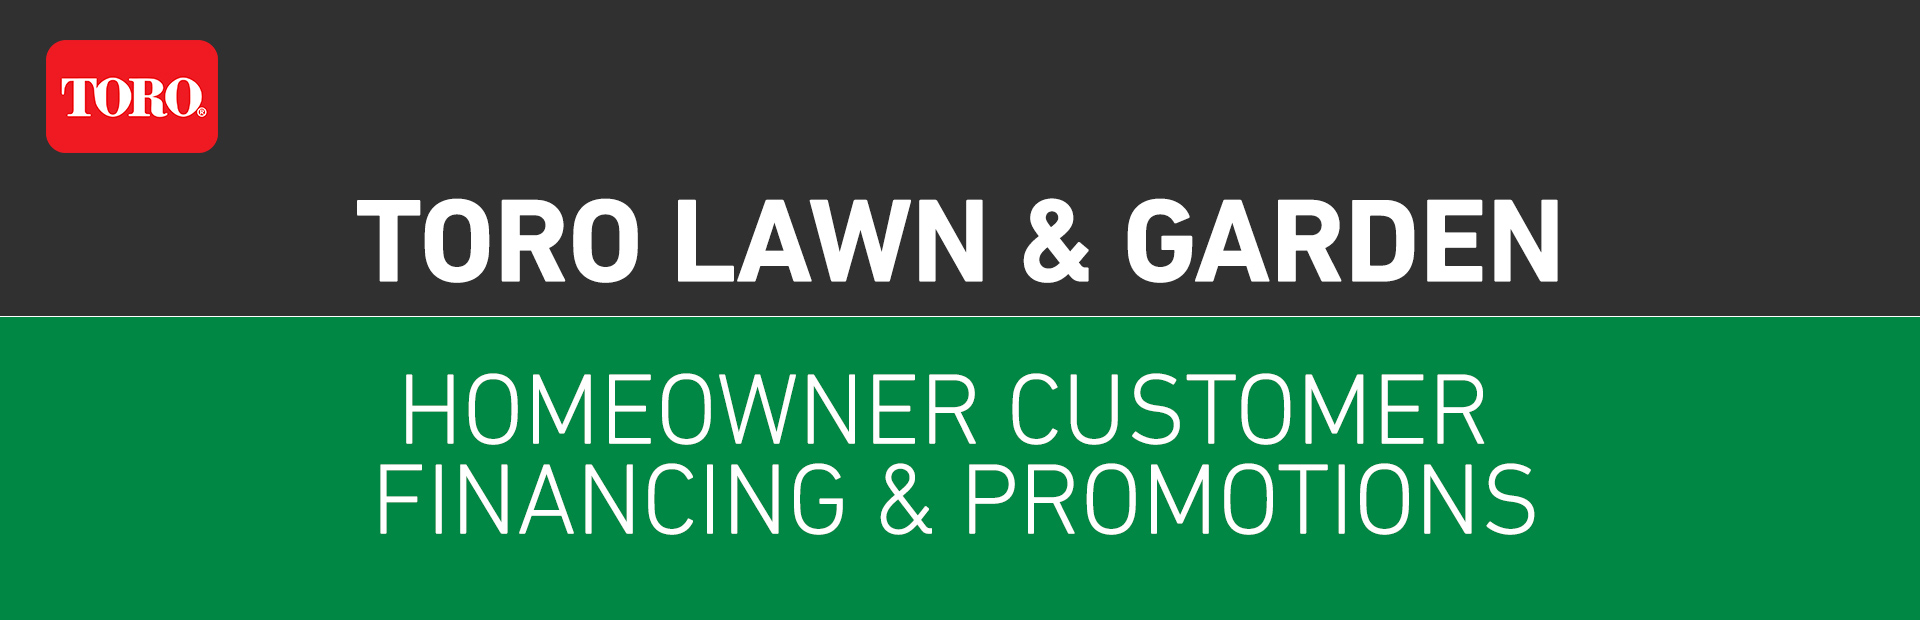 Toro: Toro Homeowner Customer Financing & Promotions